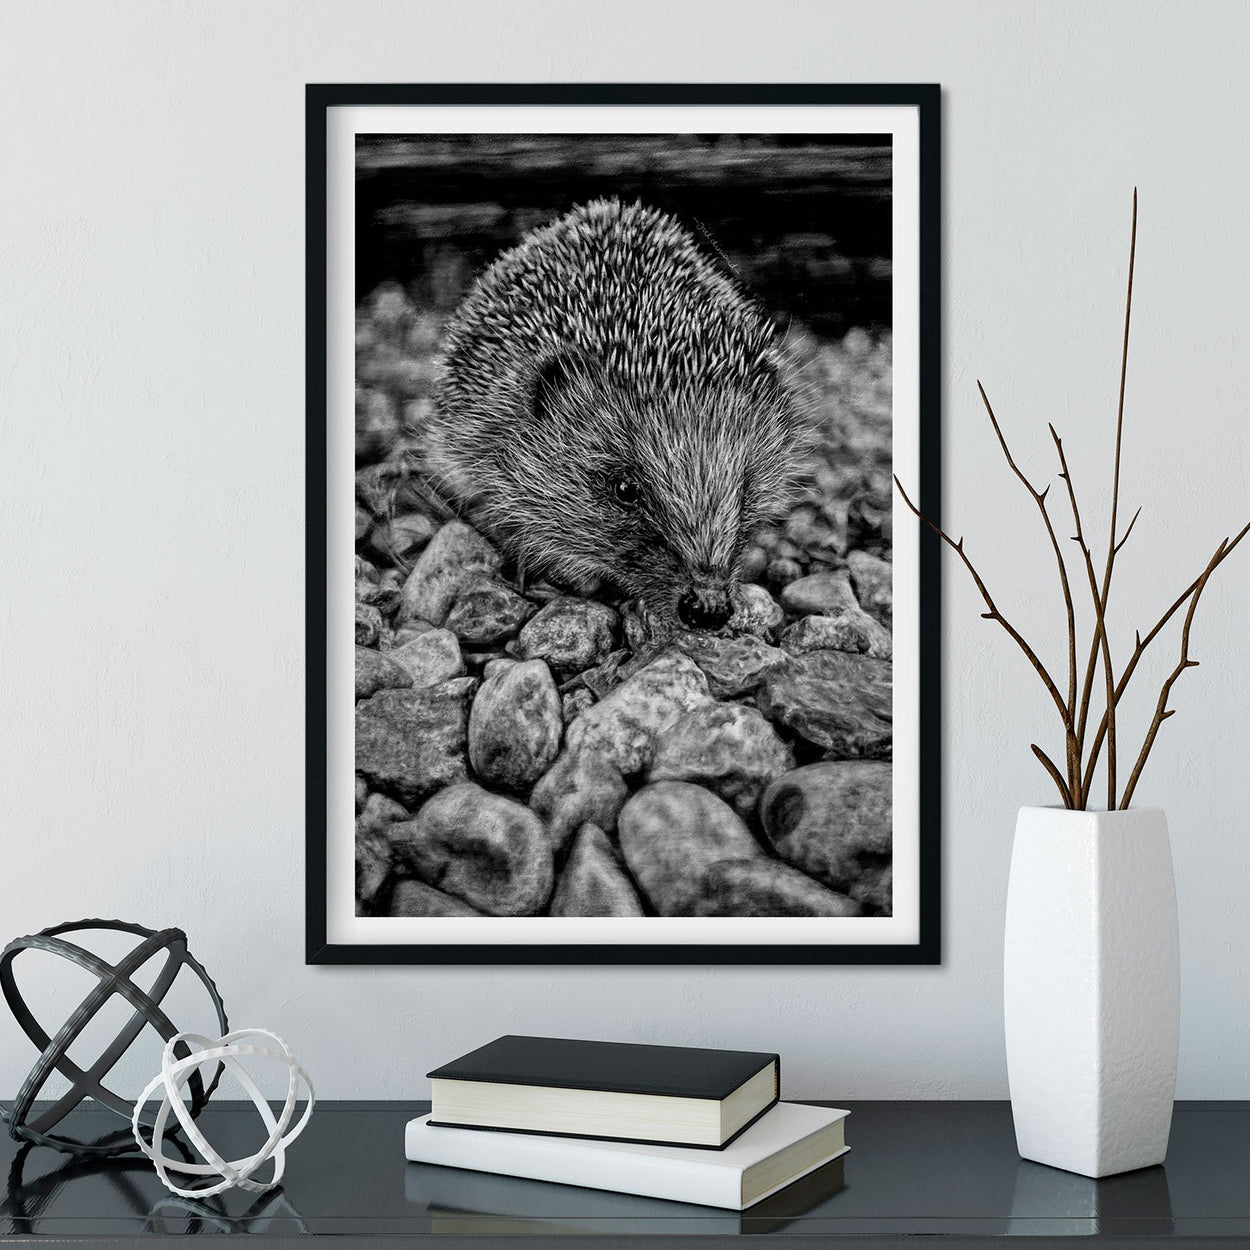 Hedgehog Wall Art - The Thriving Wild